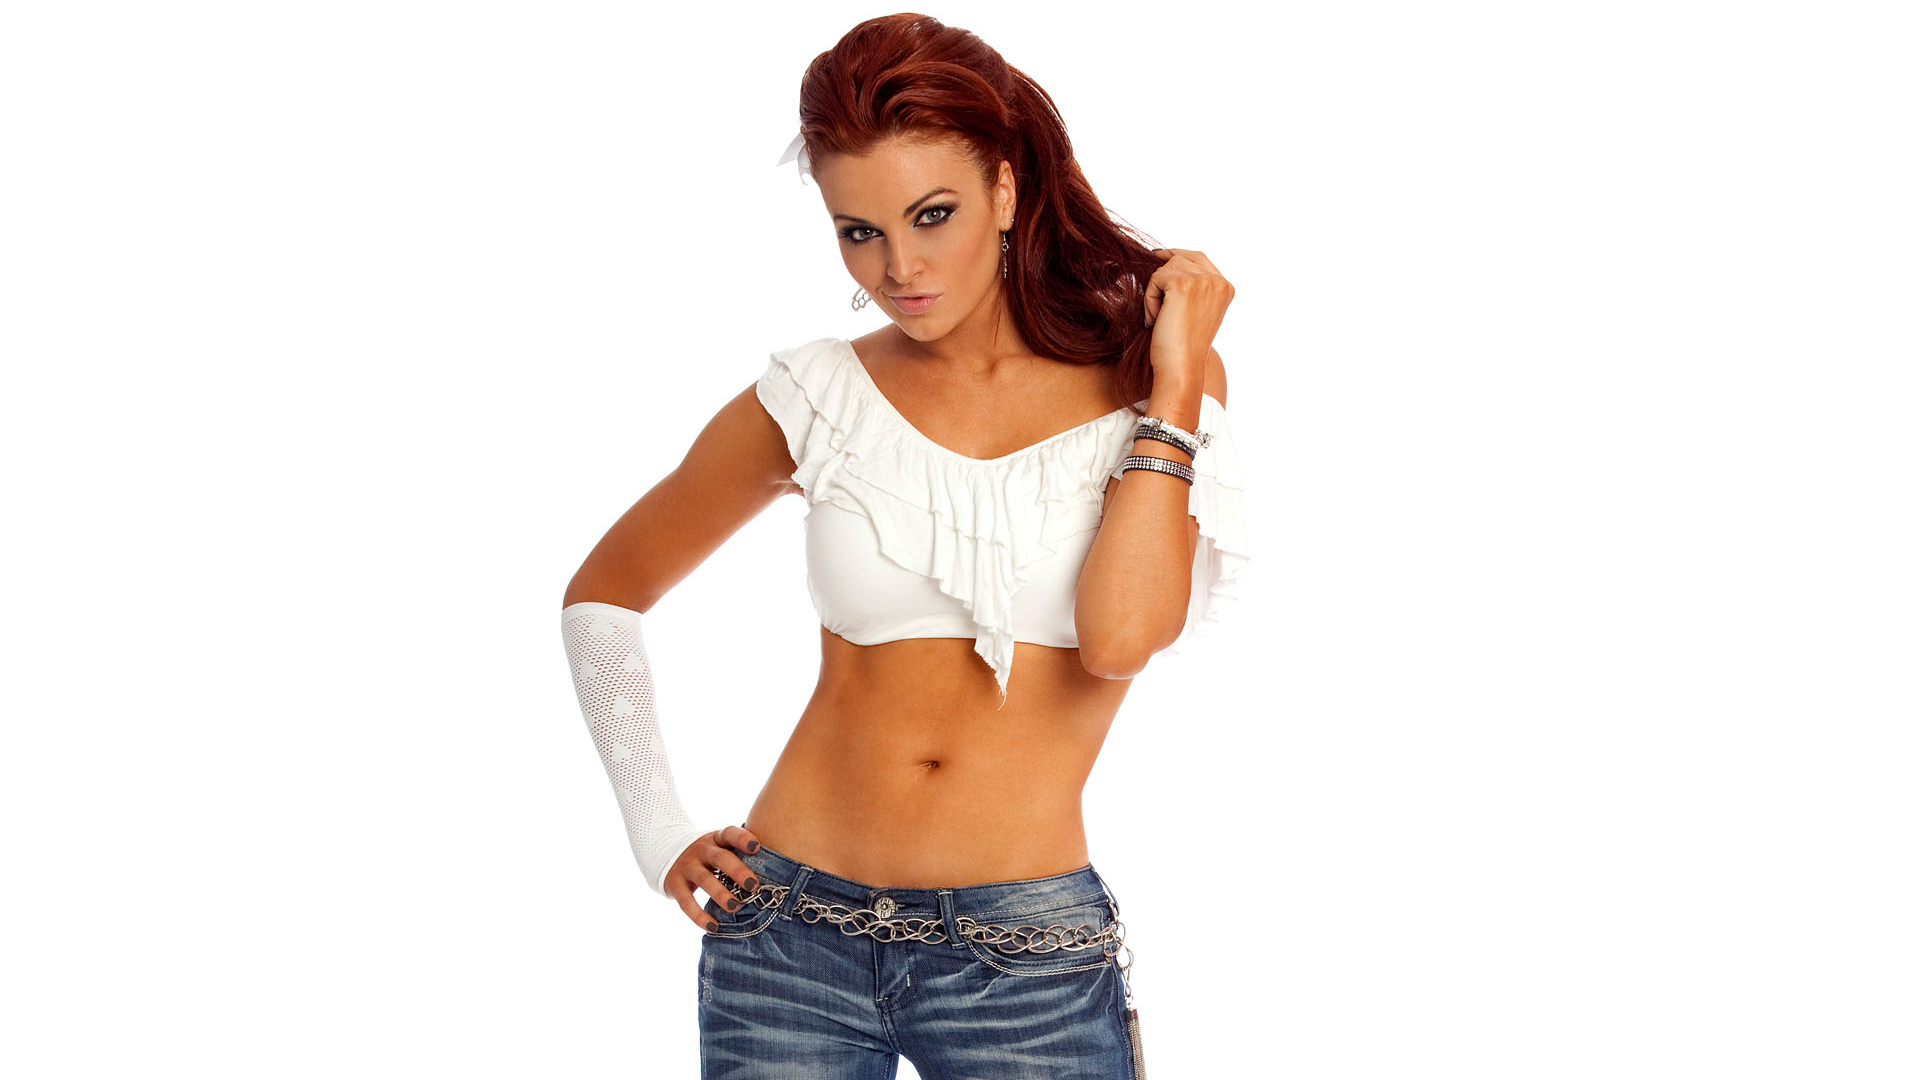 1920x1080 - Maria Kanellis Wallpapers 15